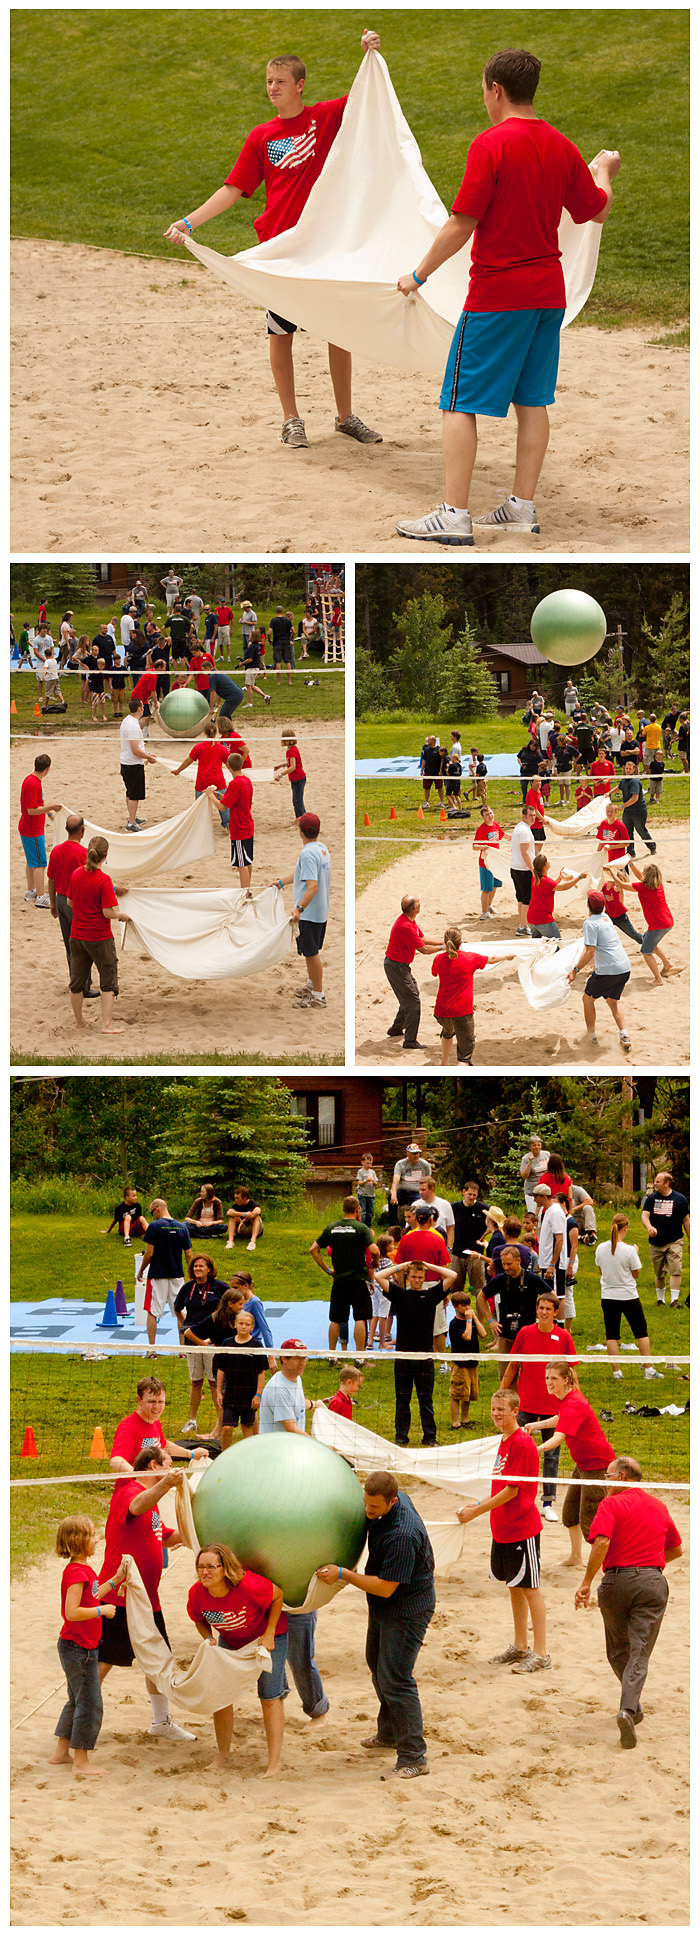 Aspen Grove Giant Volley Ball